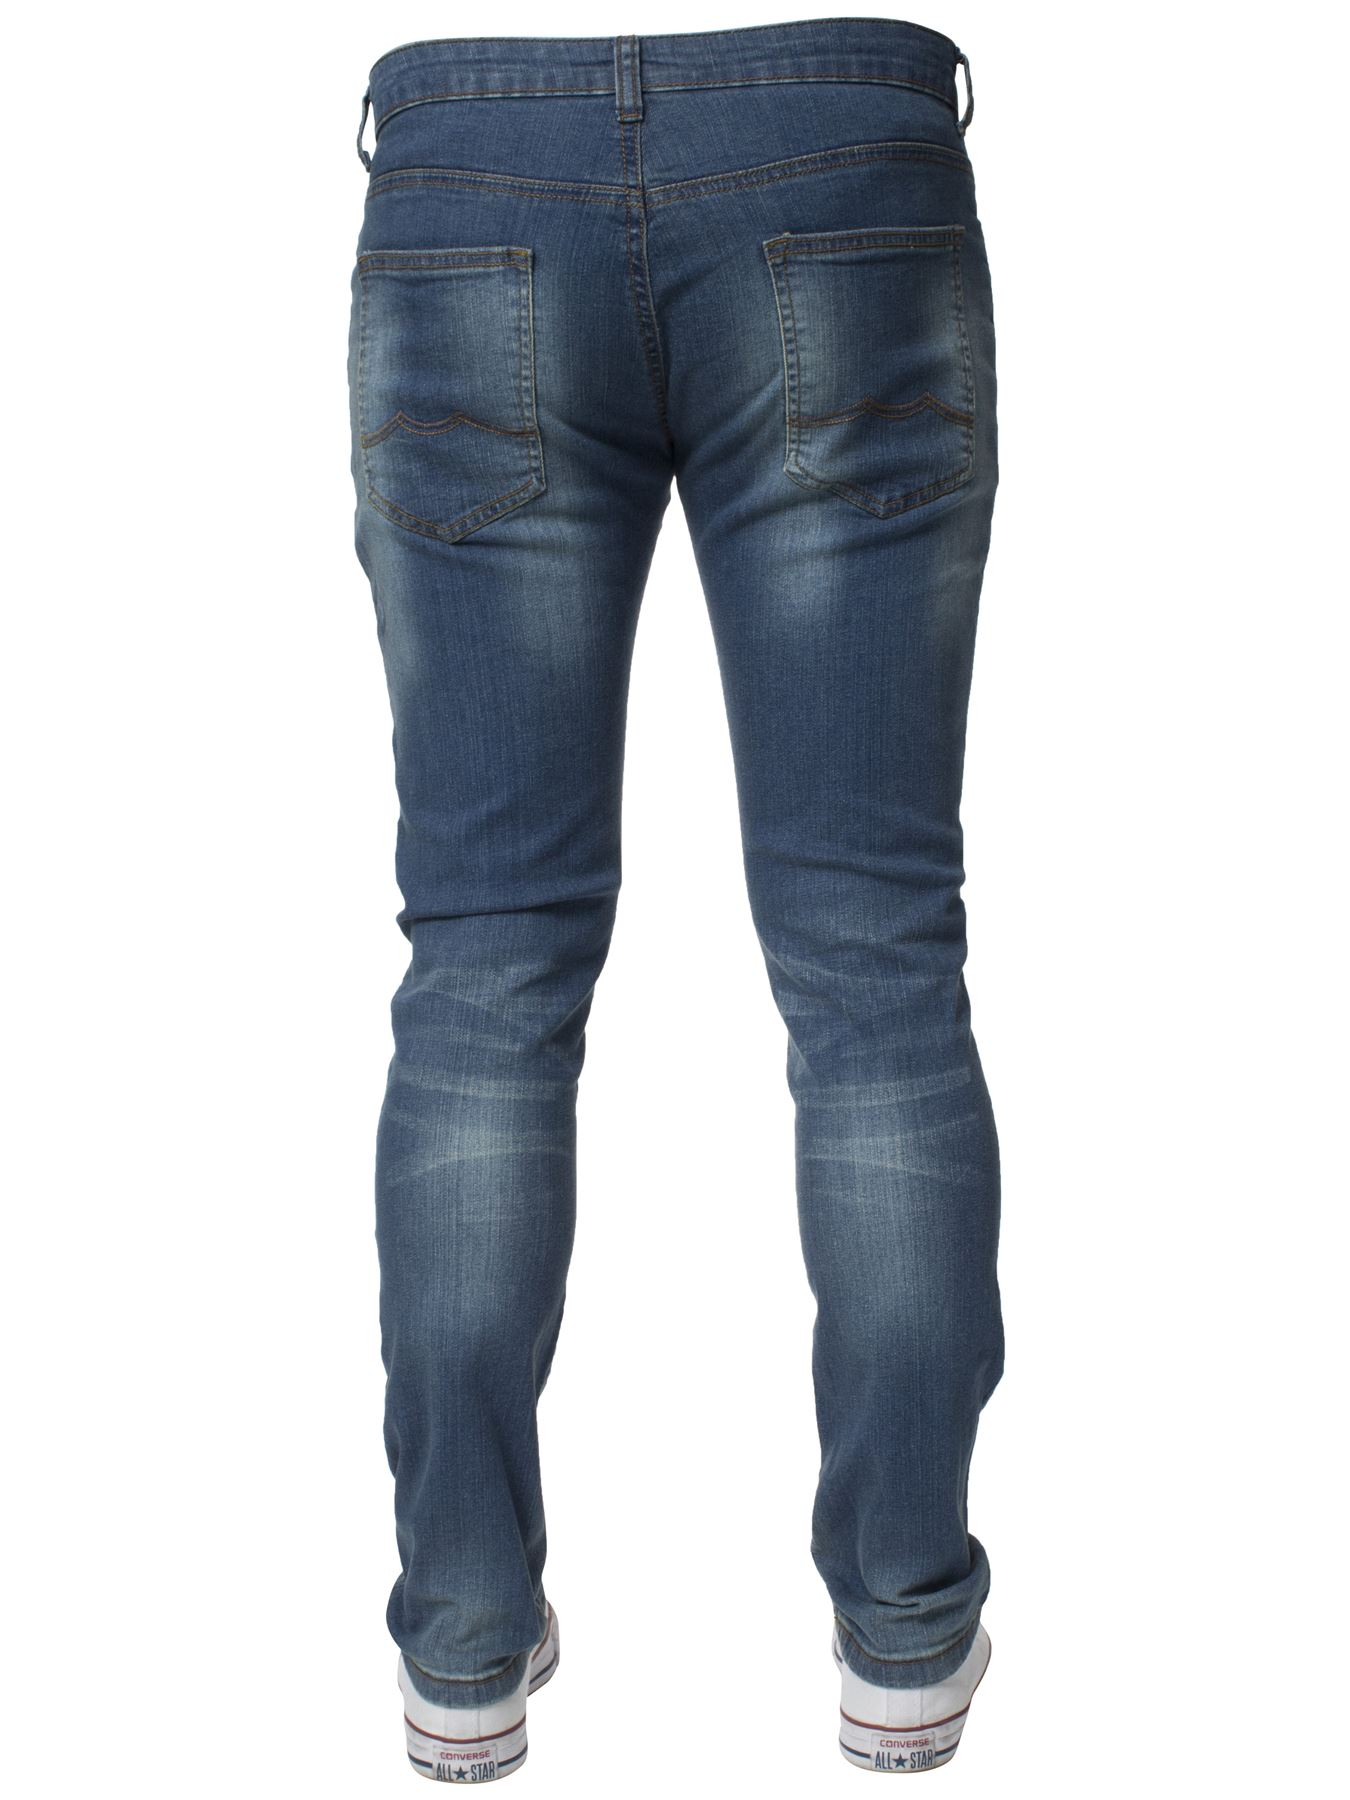 Mens-Skinny-Stretch-Jeans-Slim-Fit-Flex-Denim-Trousers-Pants-King-Sizes-by-Kruze thumbnail 24